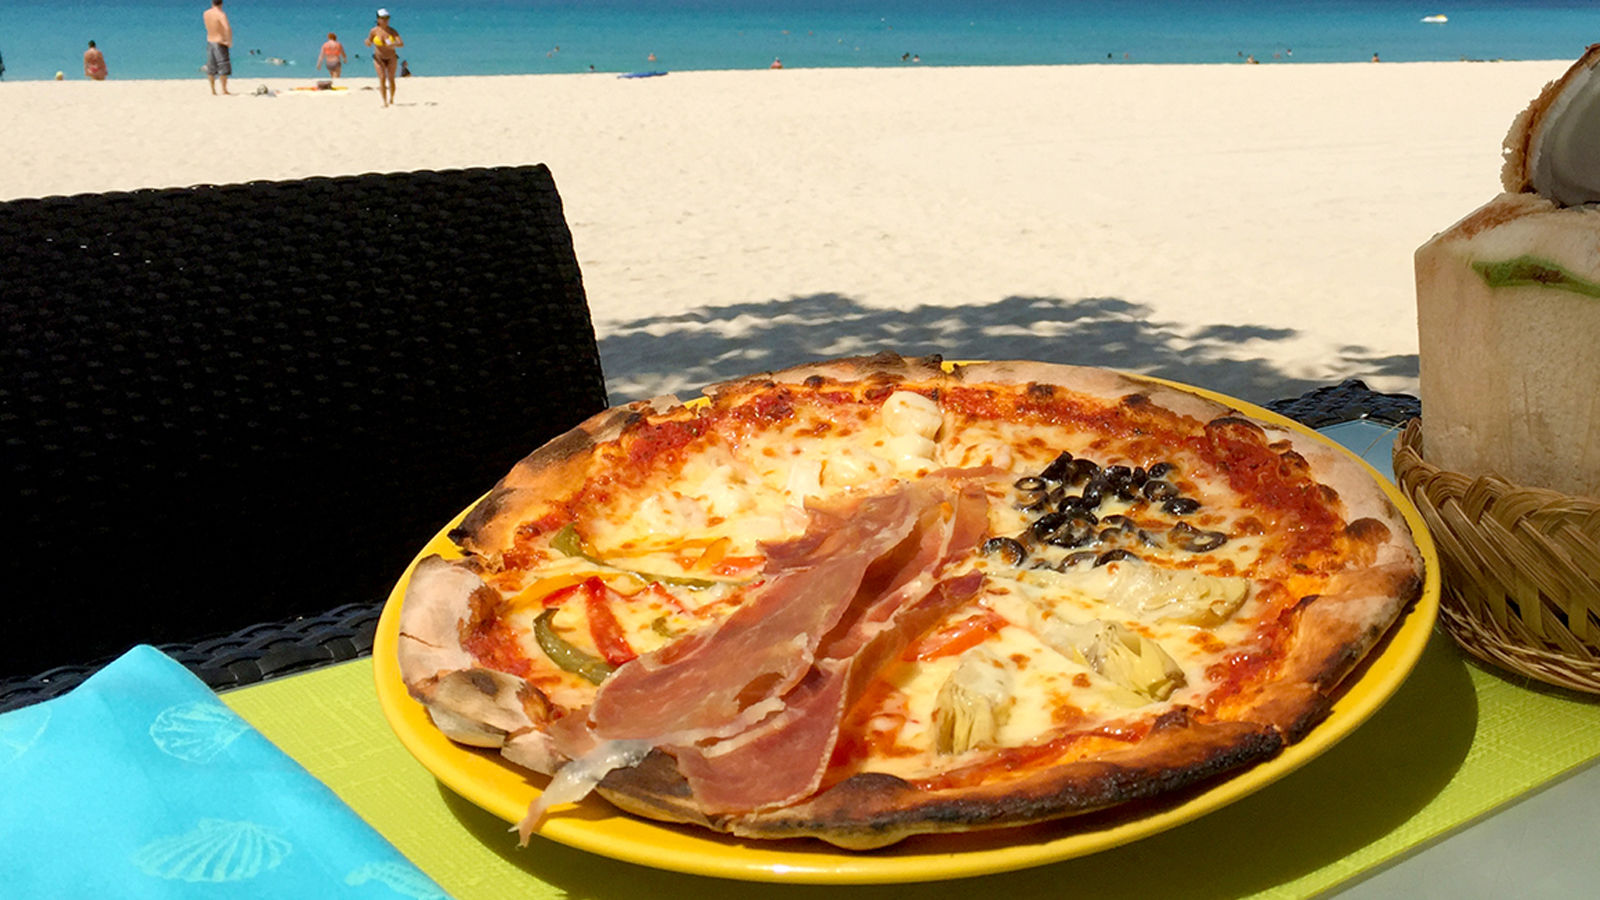 Delicious Wood-fire Oven Cooked Pizzas by the Beach